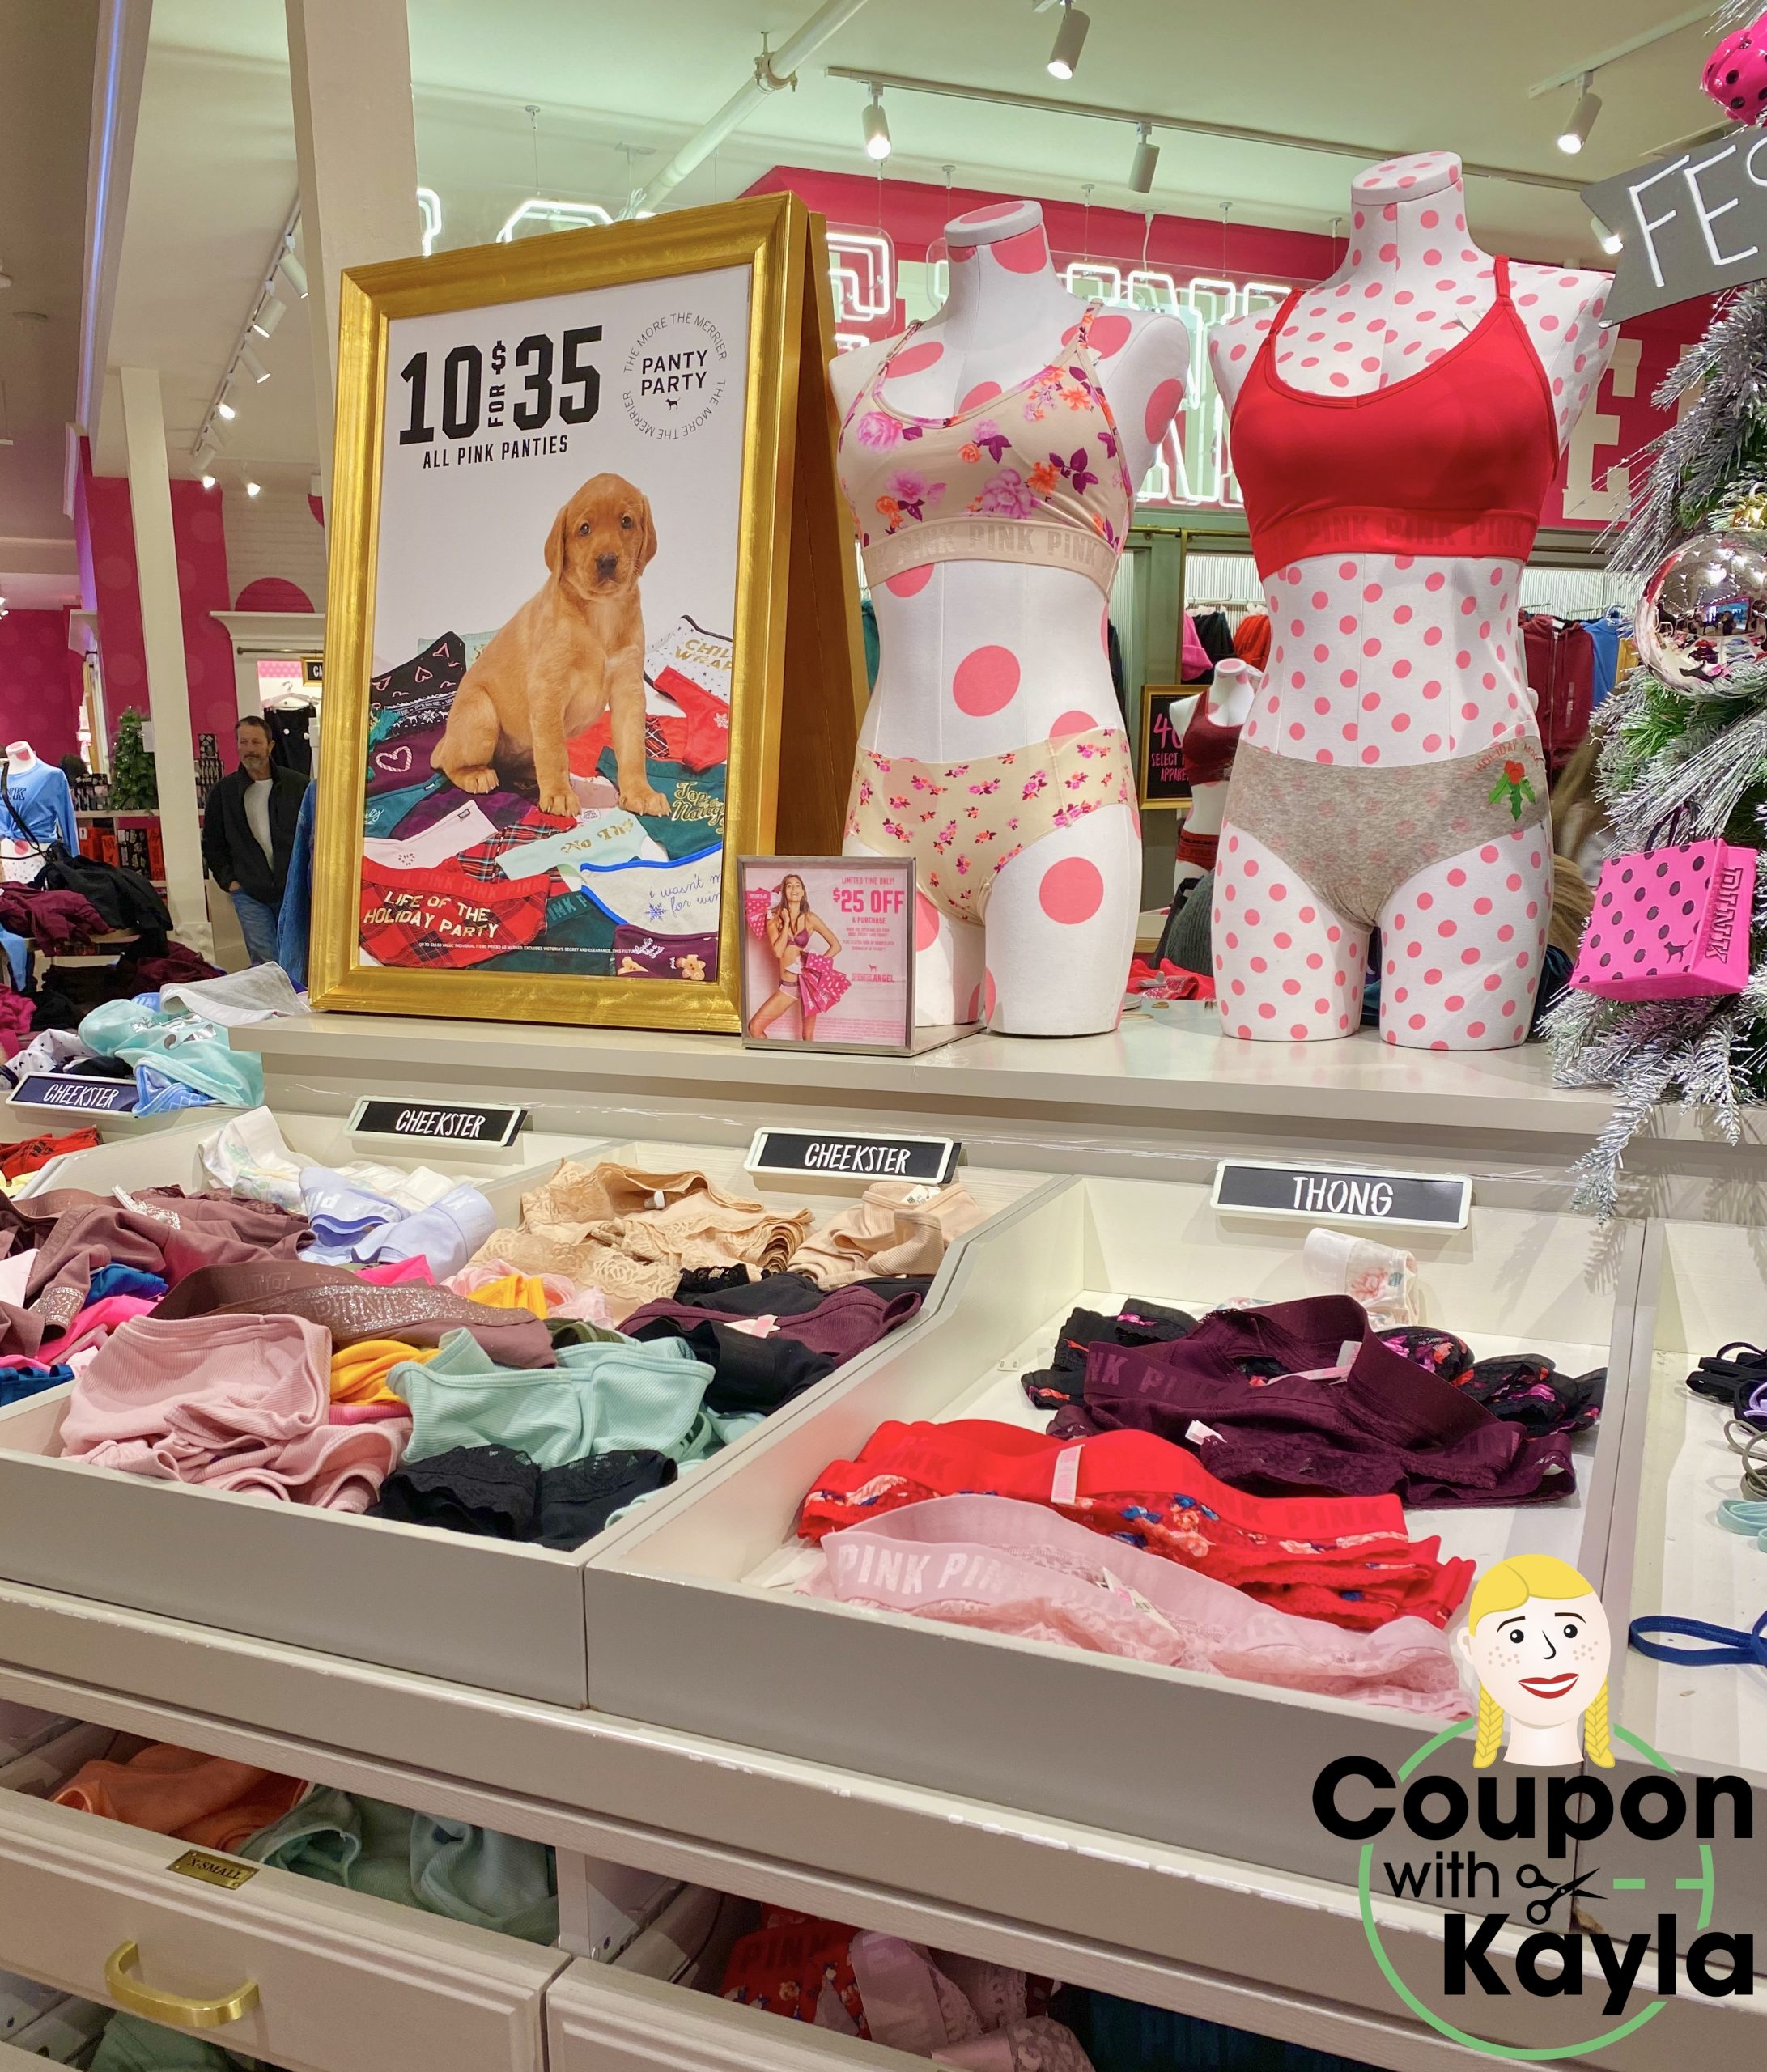 Victoria S Secret 10 For 35 Panties Coupon With Kayla